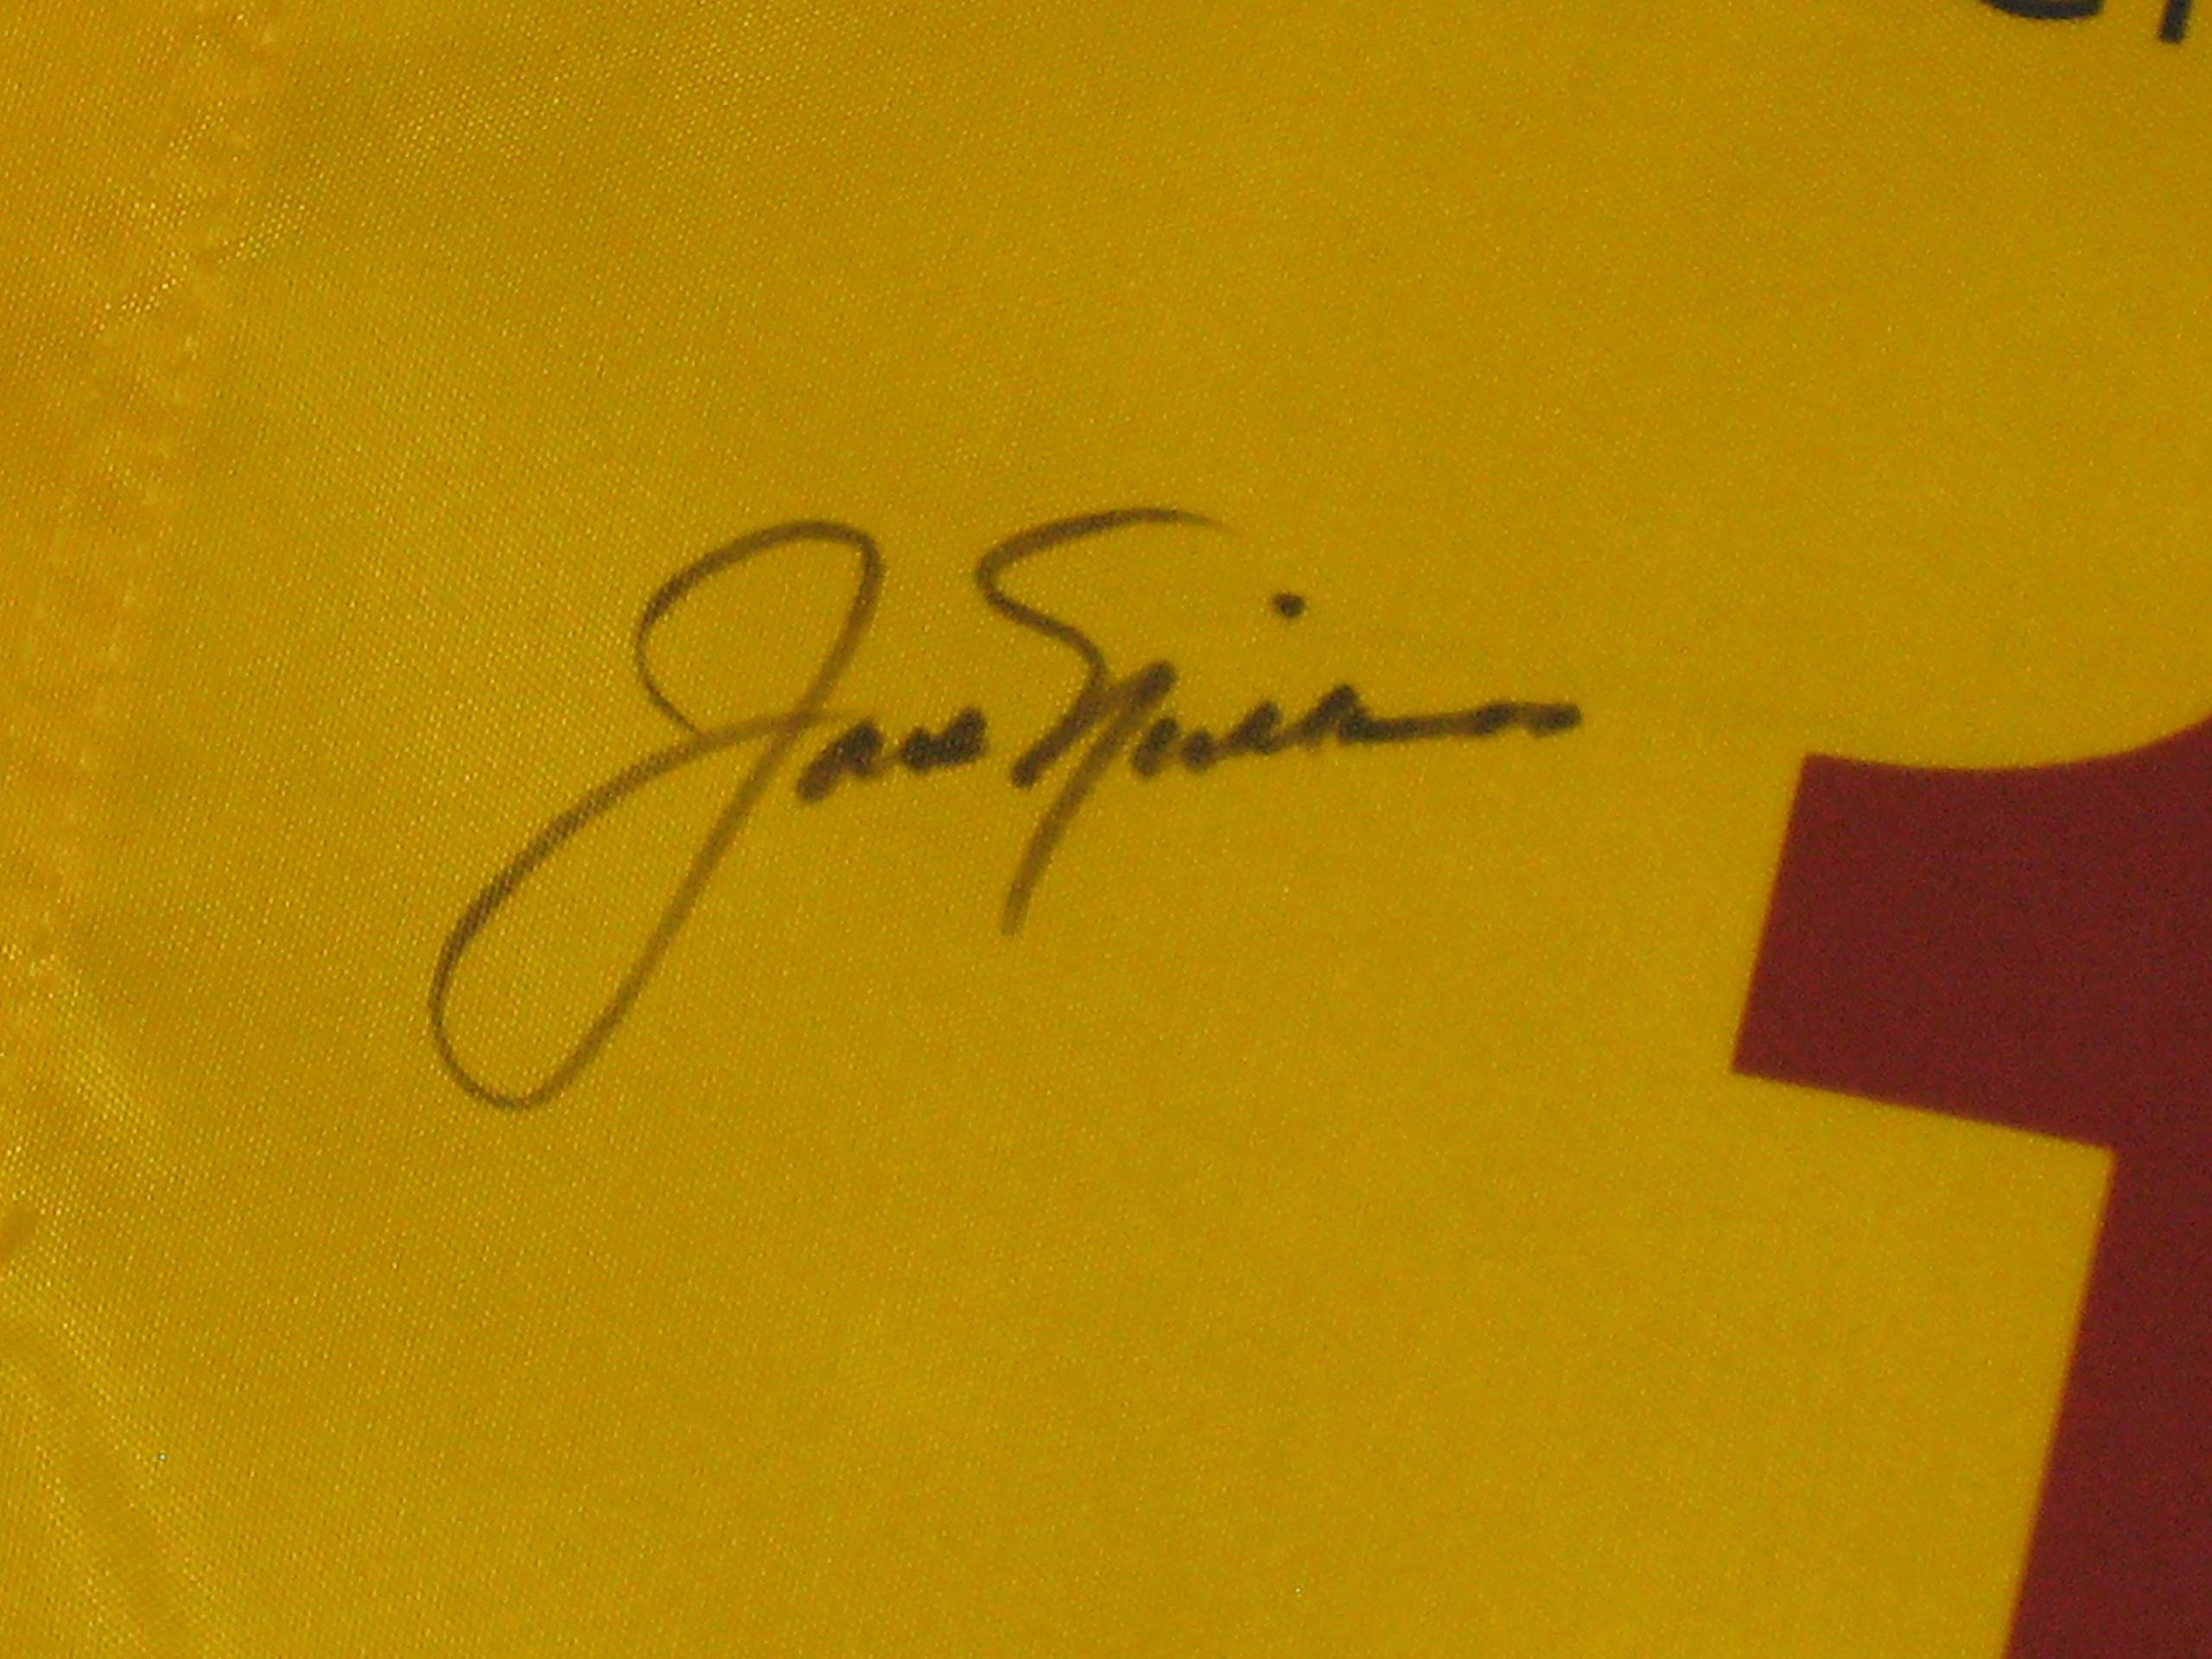 Jack Nicklaus Autographed 2011 British Open Royal St. George's The Open Tournament Flag (JSA COA)